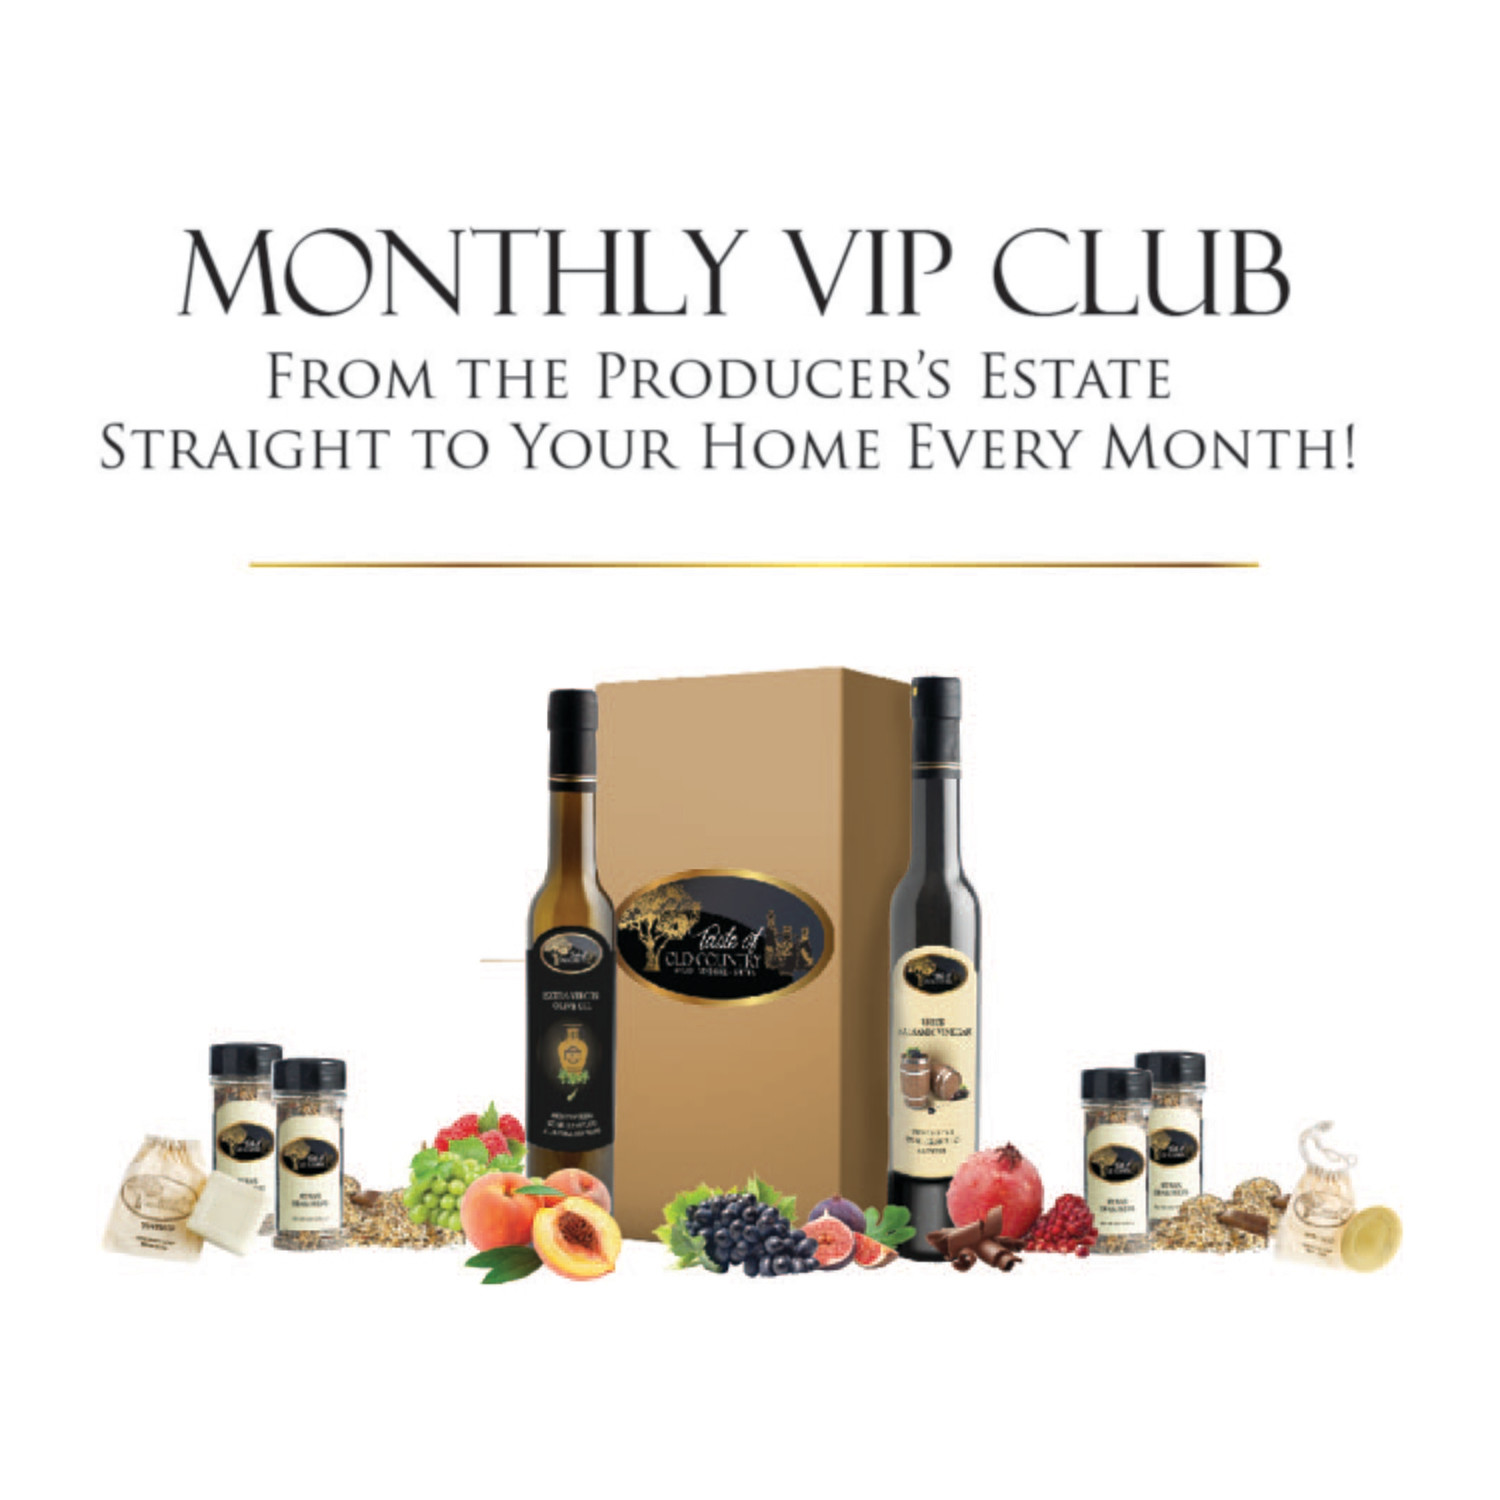 Monthly VIP Club